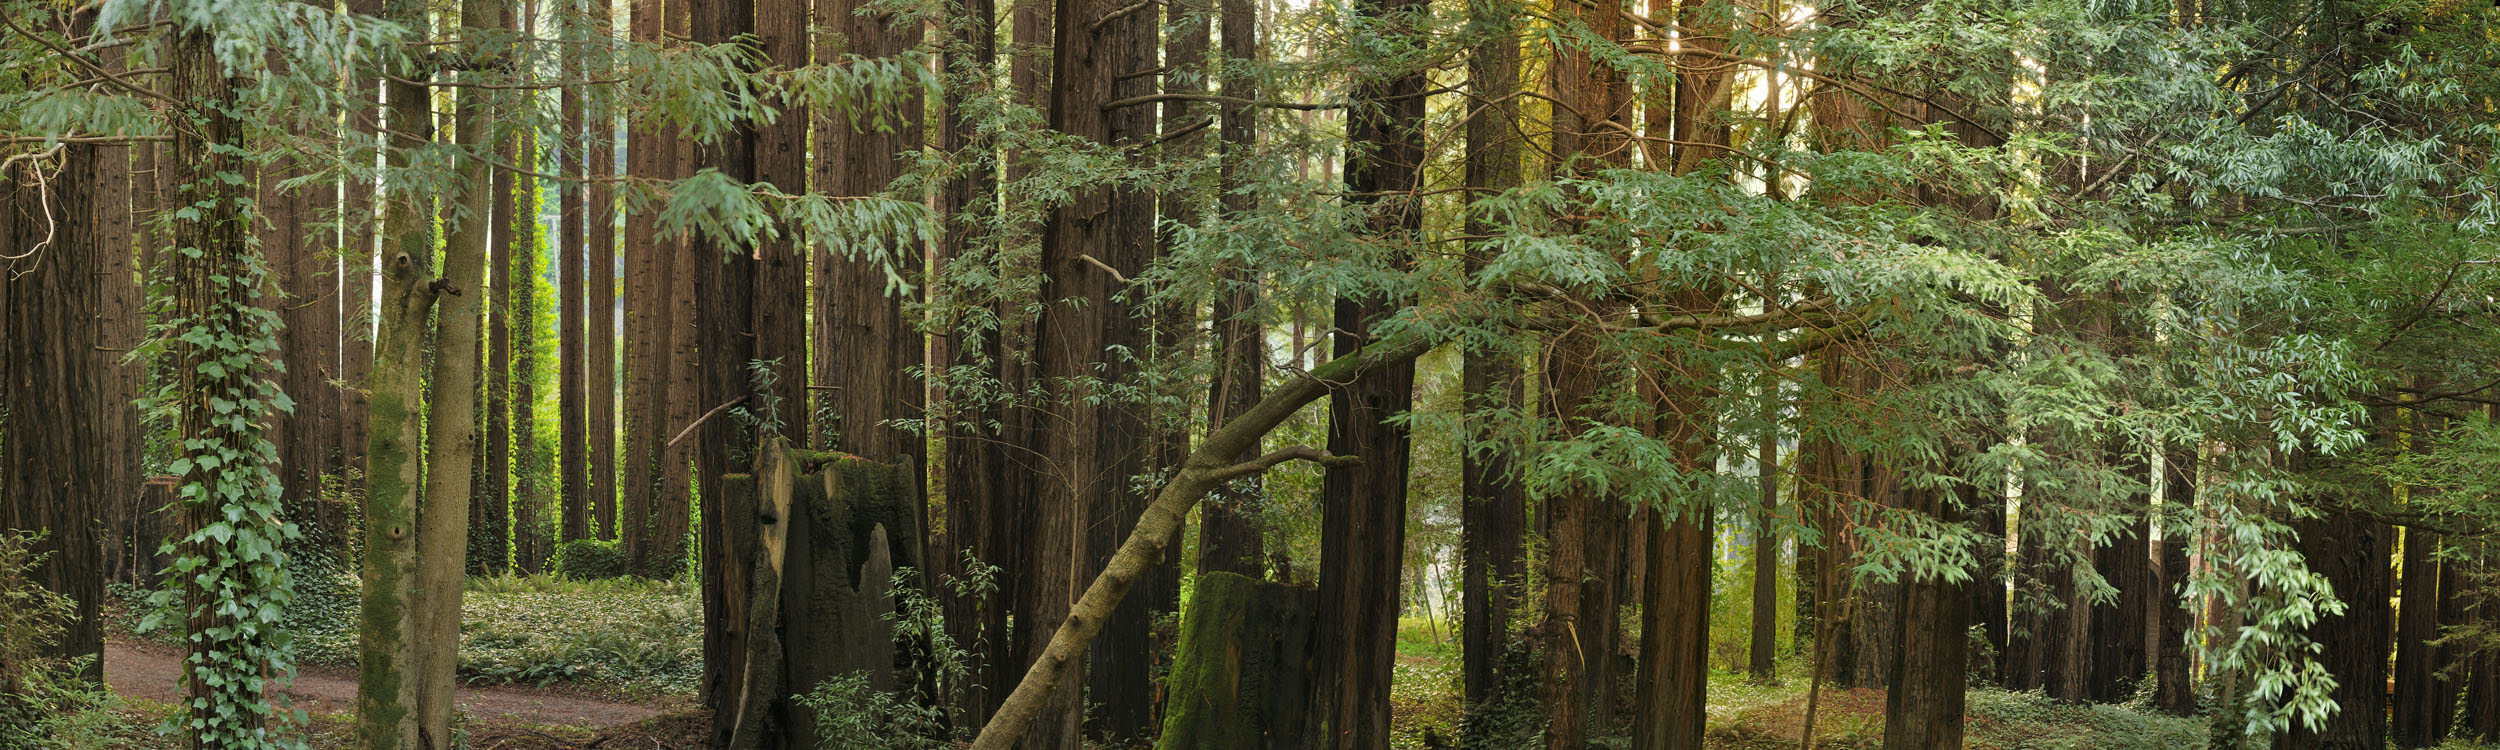 Redwood Grove near Monte Rio, CA